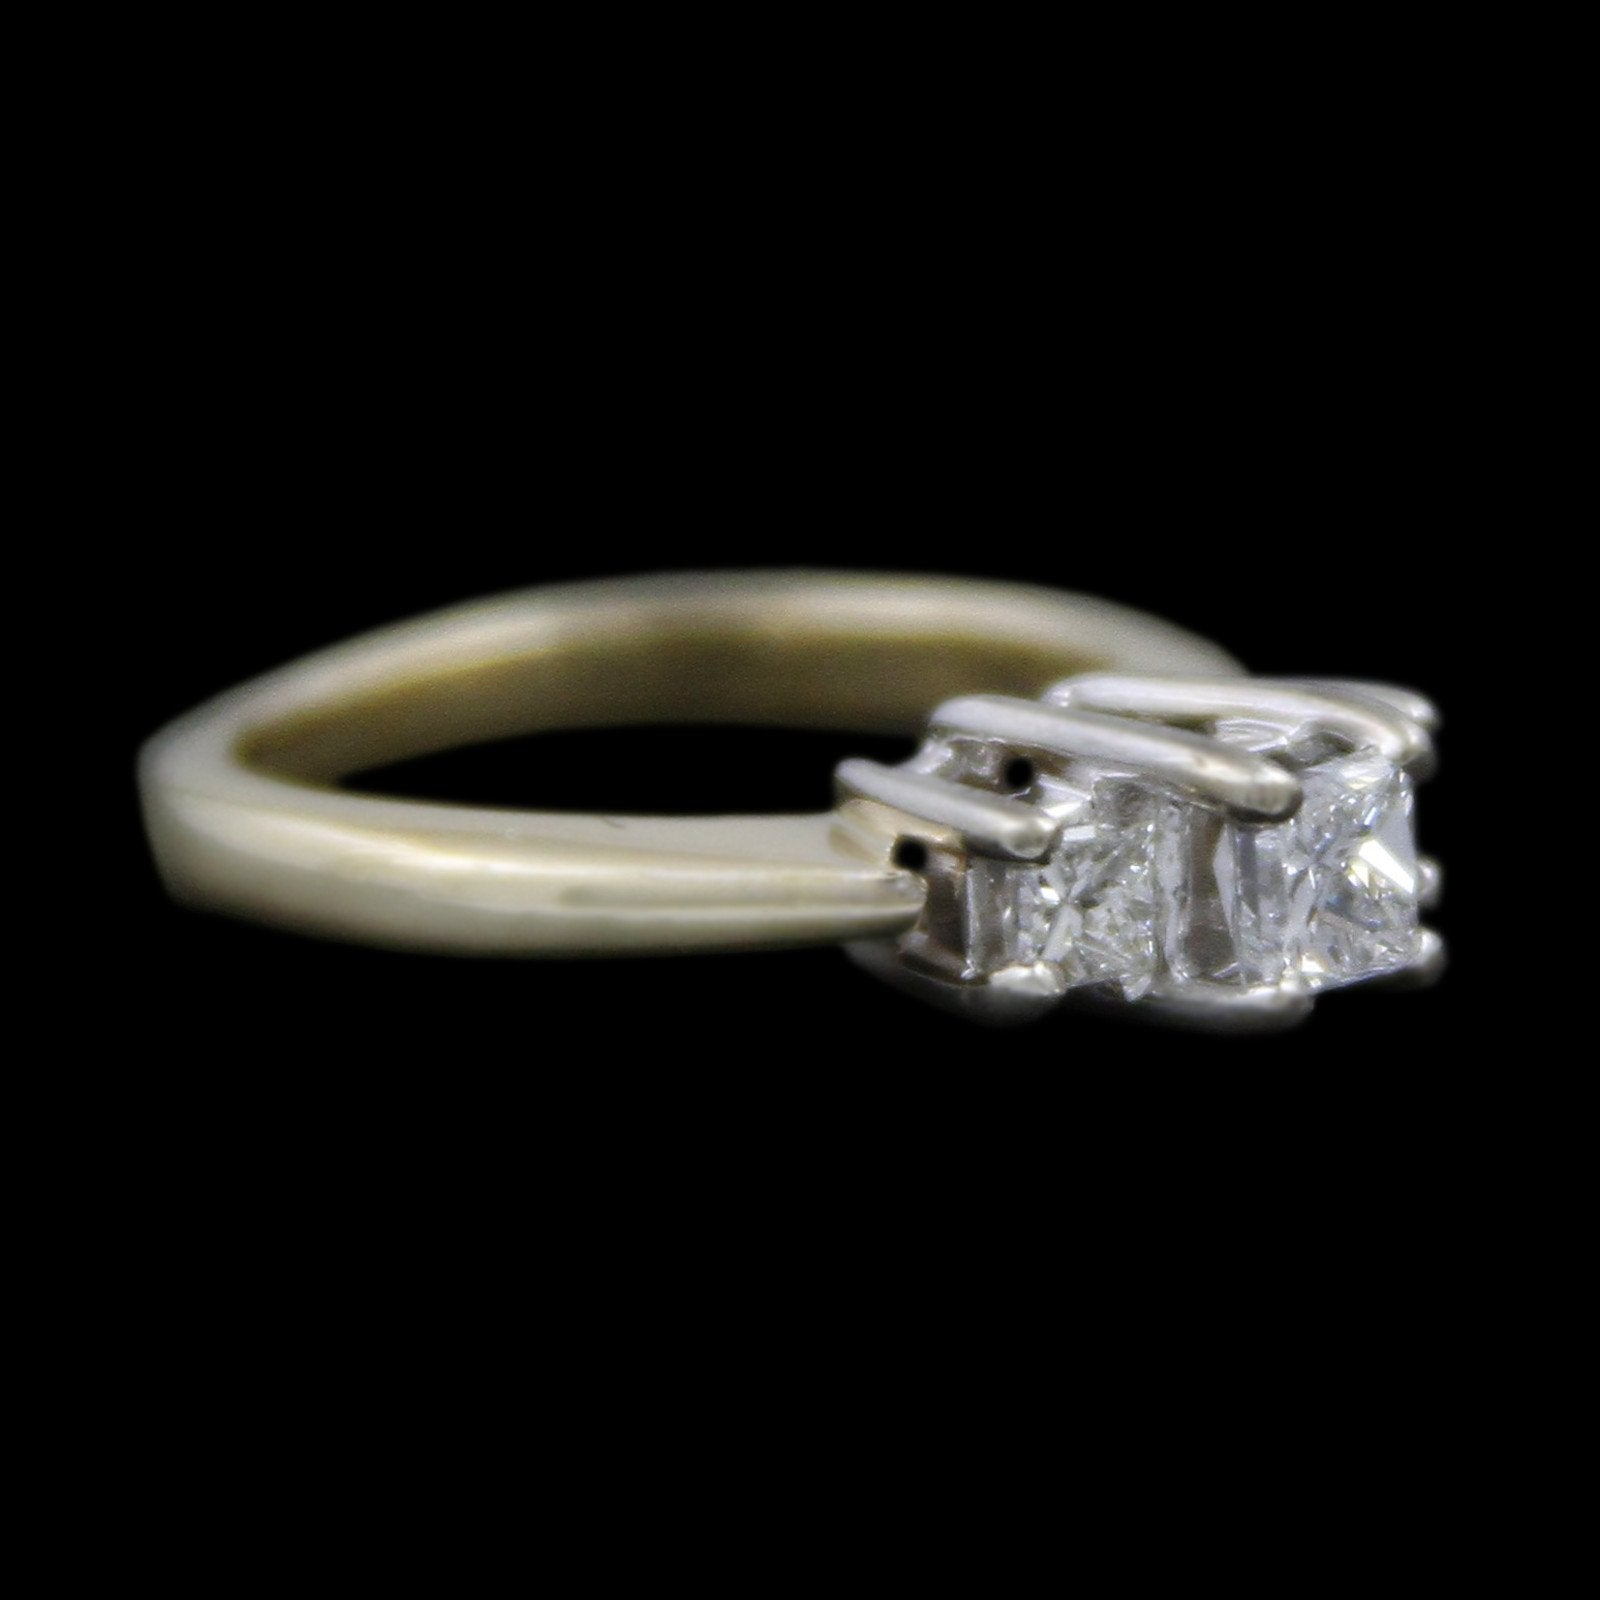 DeBeers Style Ring with .50cttw Princess Cut Diamonds Crafted in 14k Yellow Gold-2